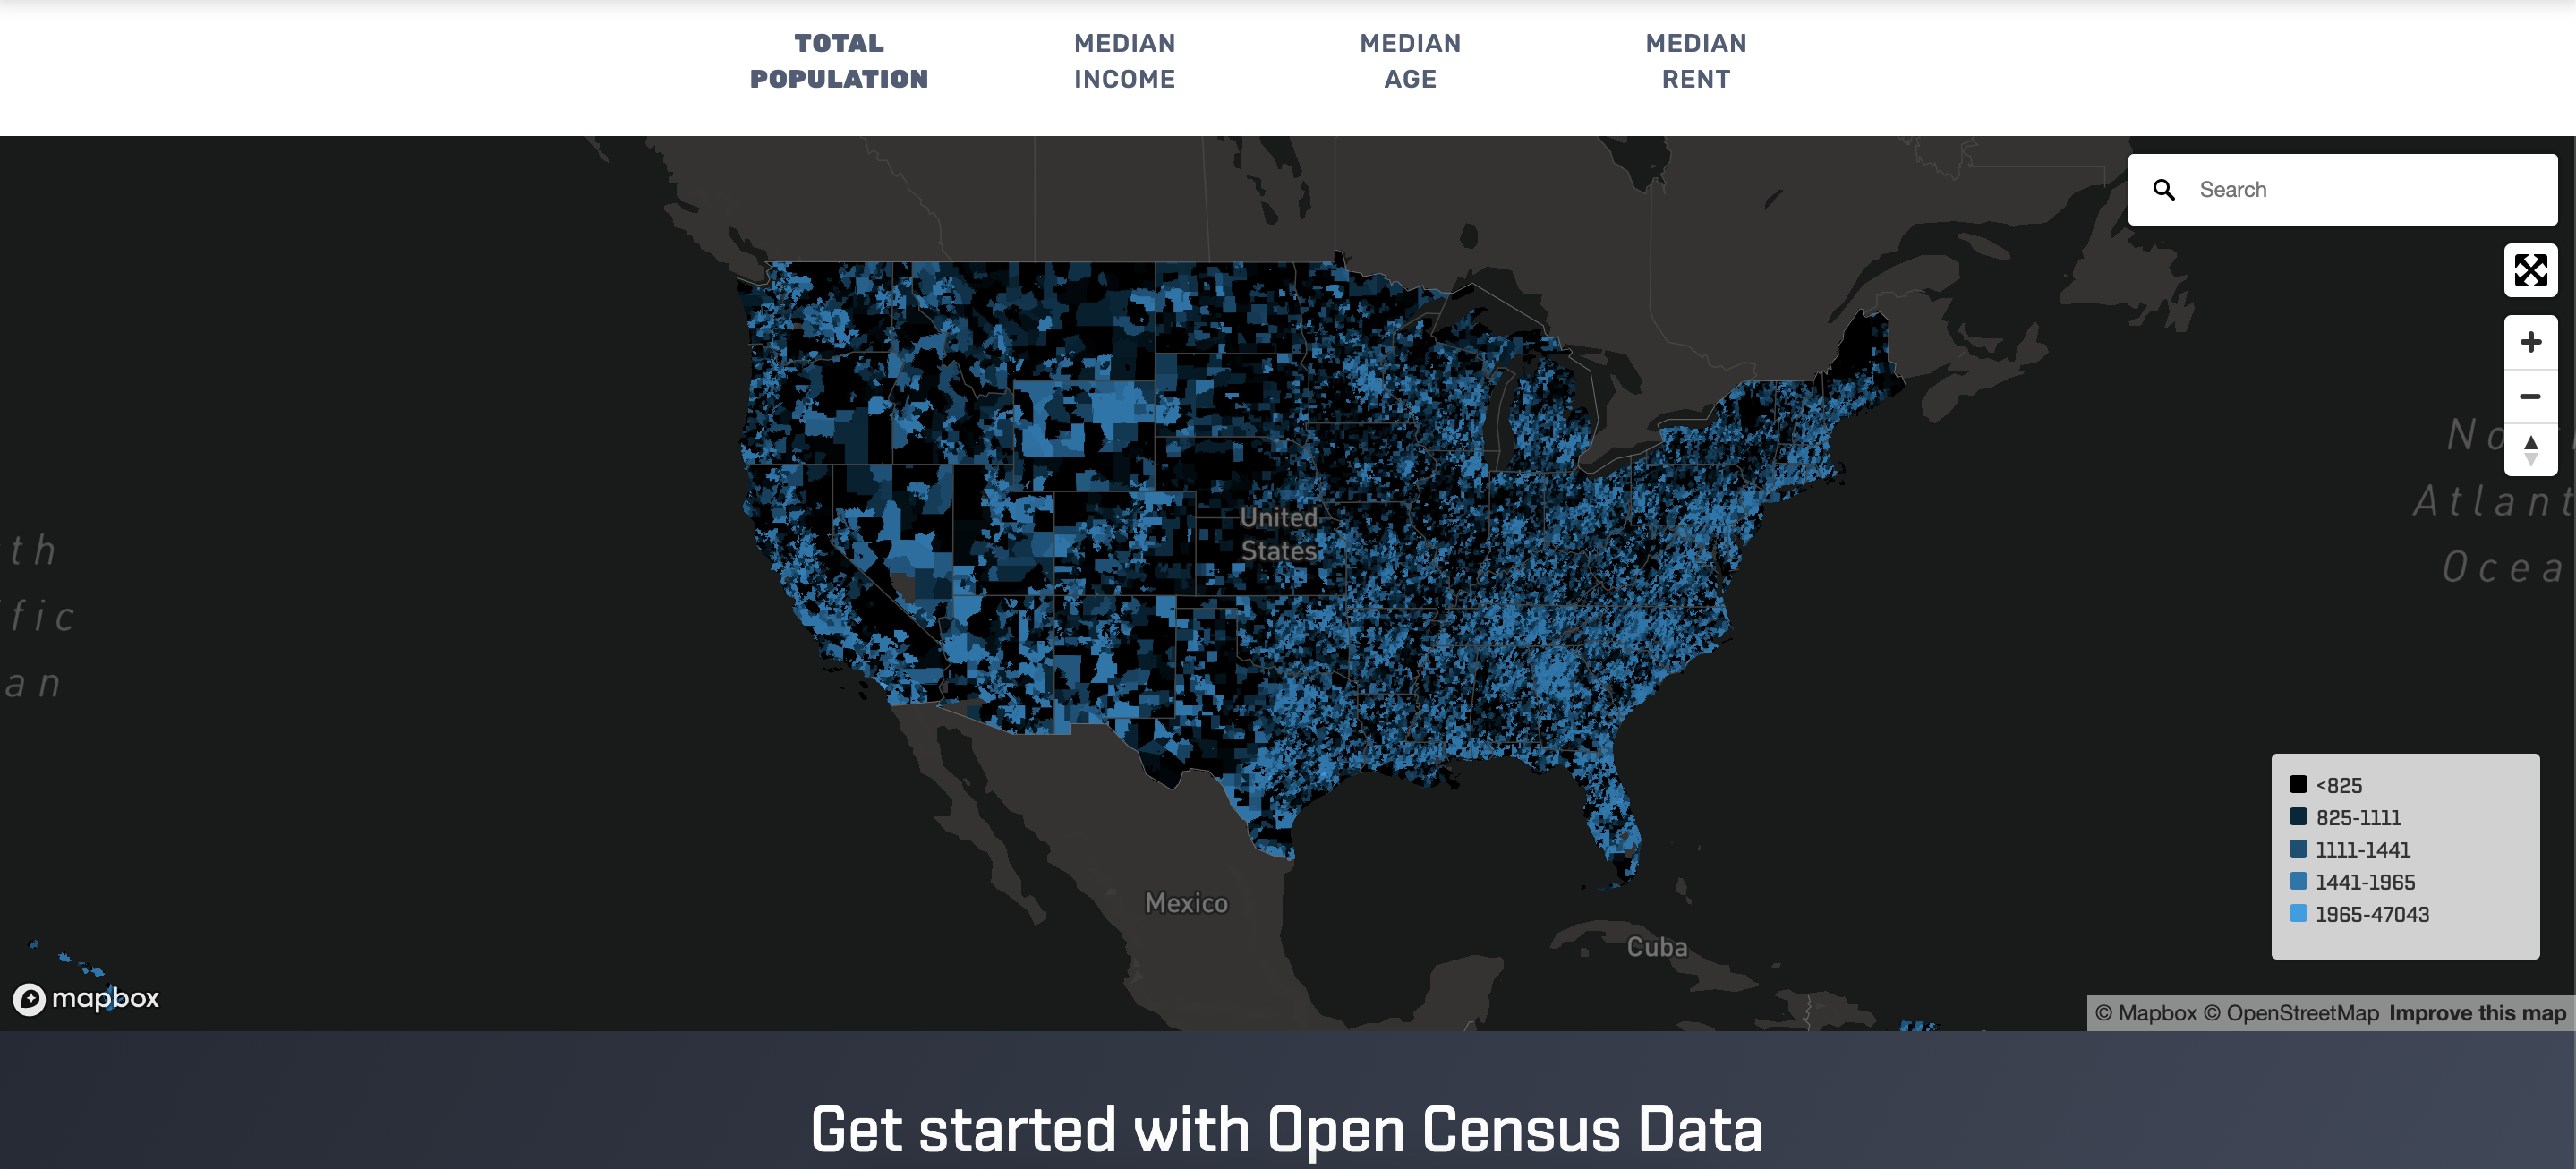 Open census data provide detailed demographic information for data enrichment.